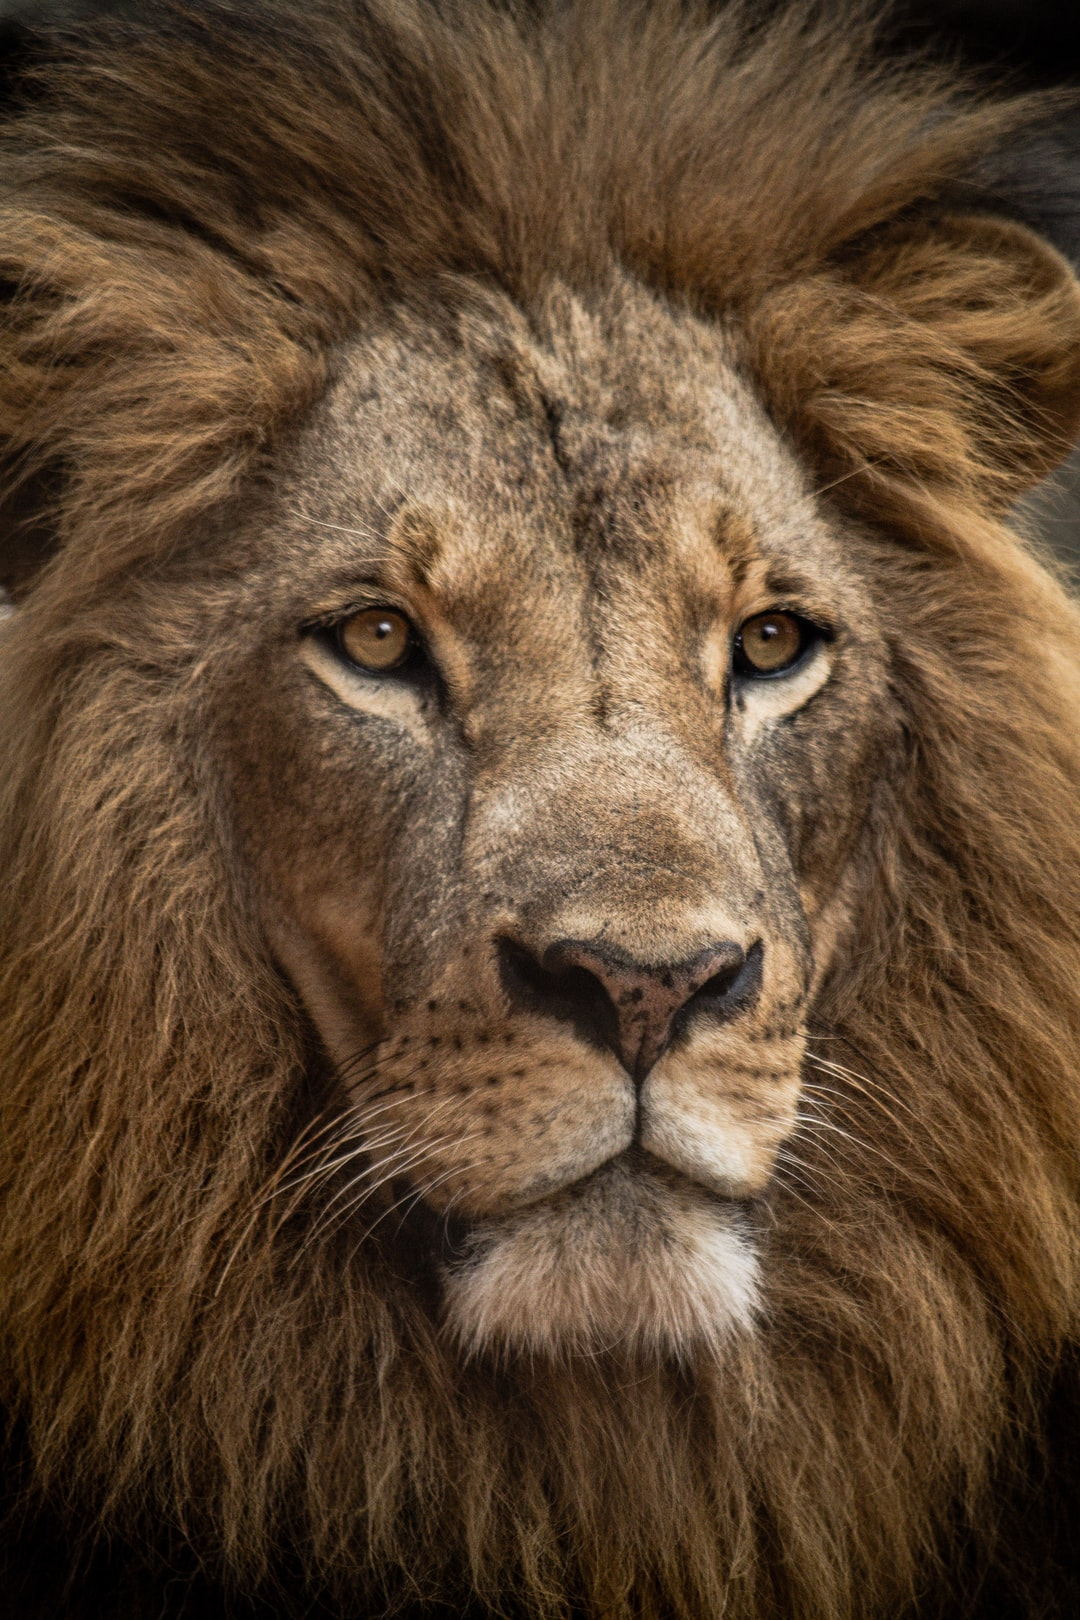 Staring at a lion through the camera with a zoom lens is quite a powerful experience. I got to photograph this stunning lion at the Nairobi Animal Orphanage outside of Nariobi National Park